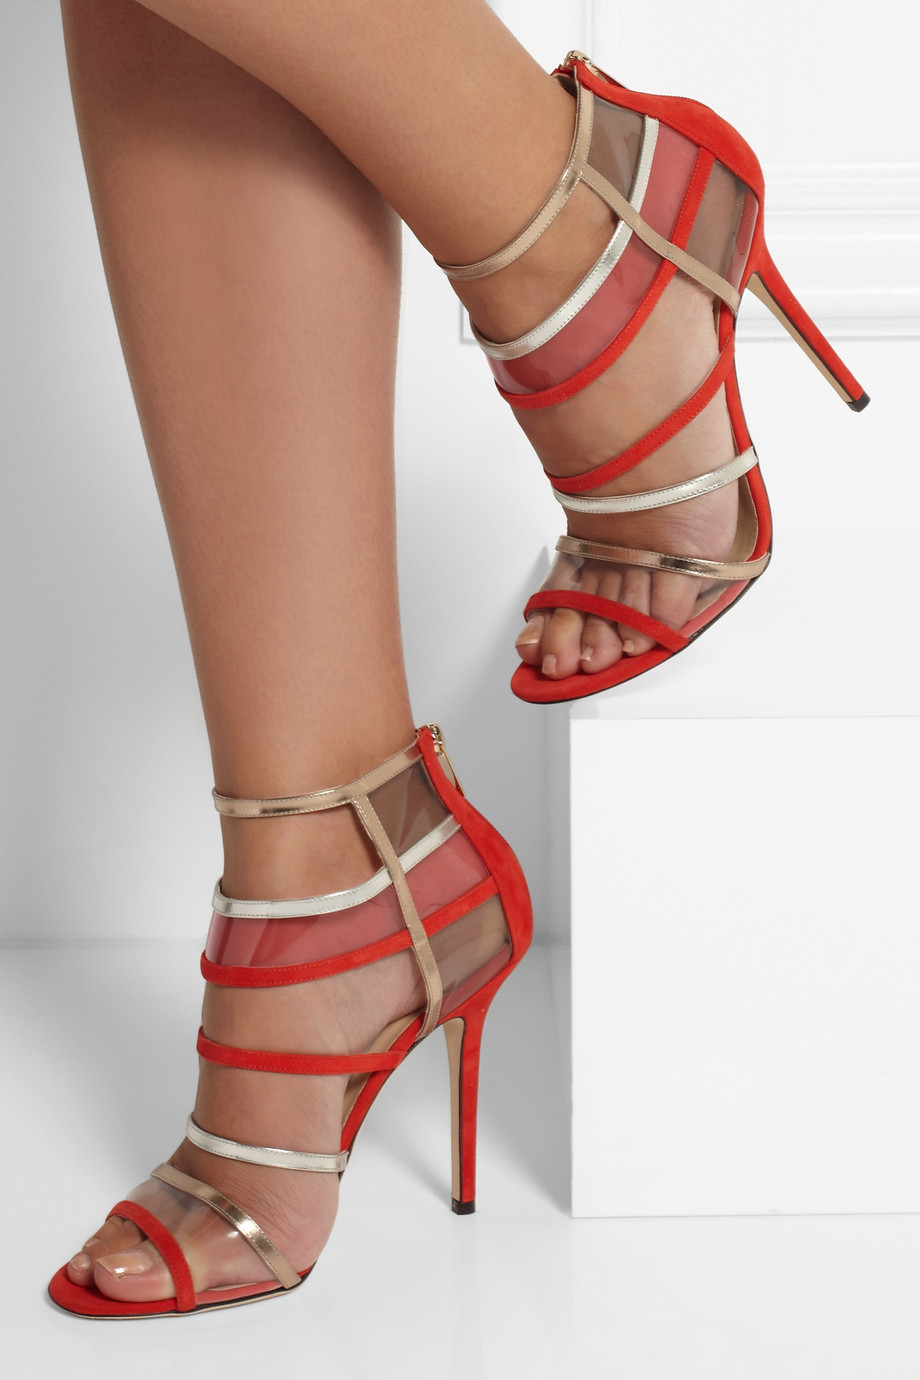 Compare Prices on Red Gladiator Sandals- Online Shopping/Buy Low